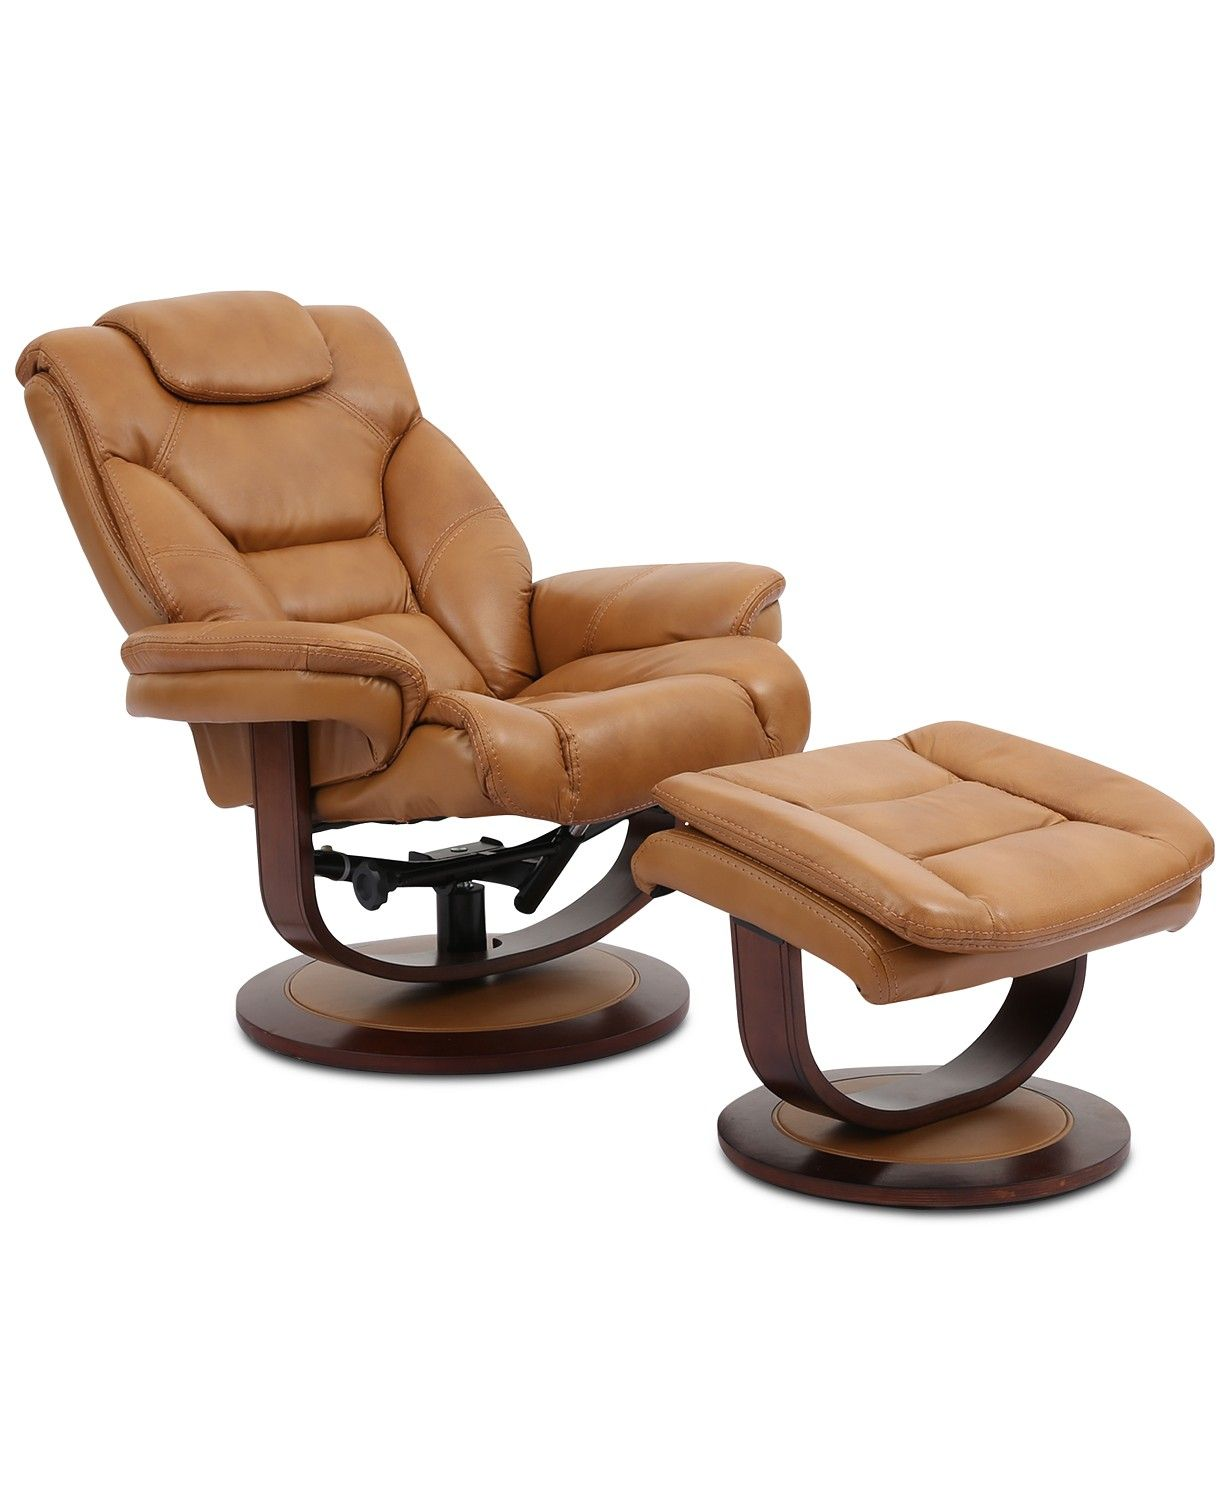 Furniture Faringdon Leather Euro Chair Ottoman Reviews Recliners Furniture Macy S Chair And Ottoman Recliner With Ottoman Eames Style Lounge Chair Leather swivel recliner with ottoman